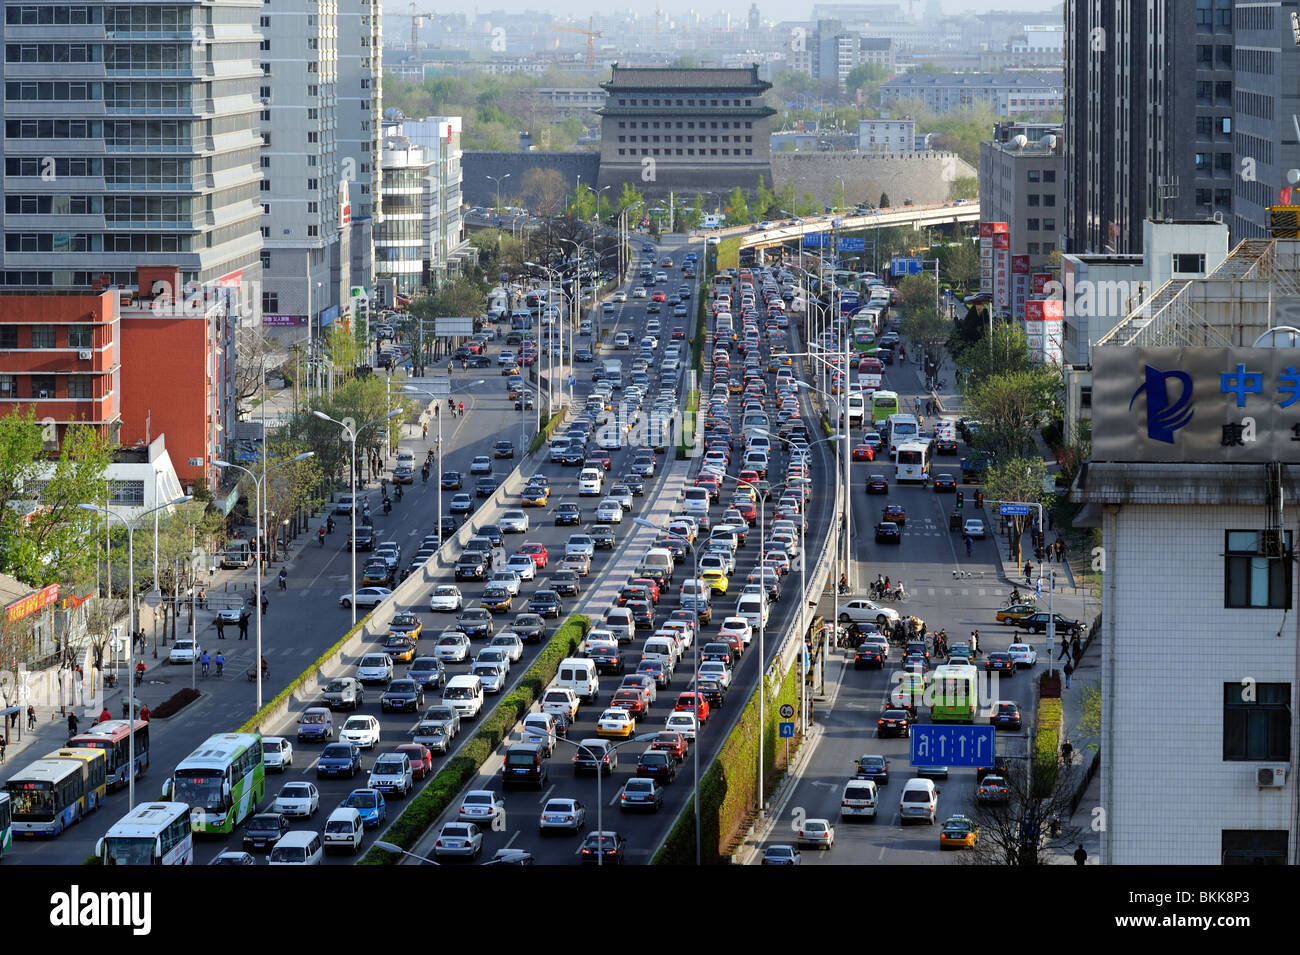 Worst traffic jam in central Beijing, China. 30-Apr-2010 - Stock Image